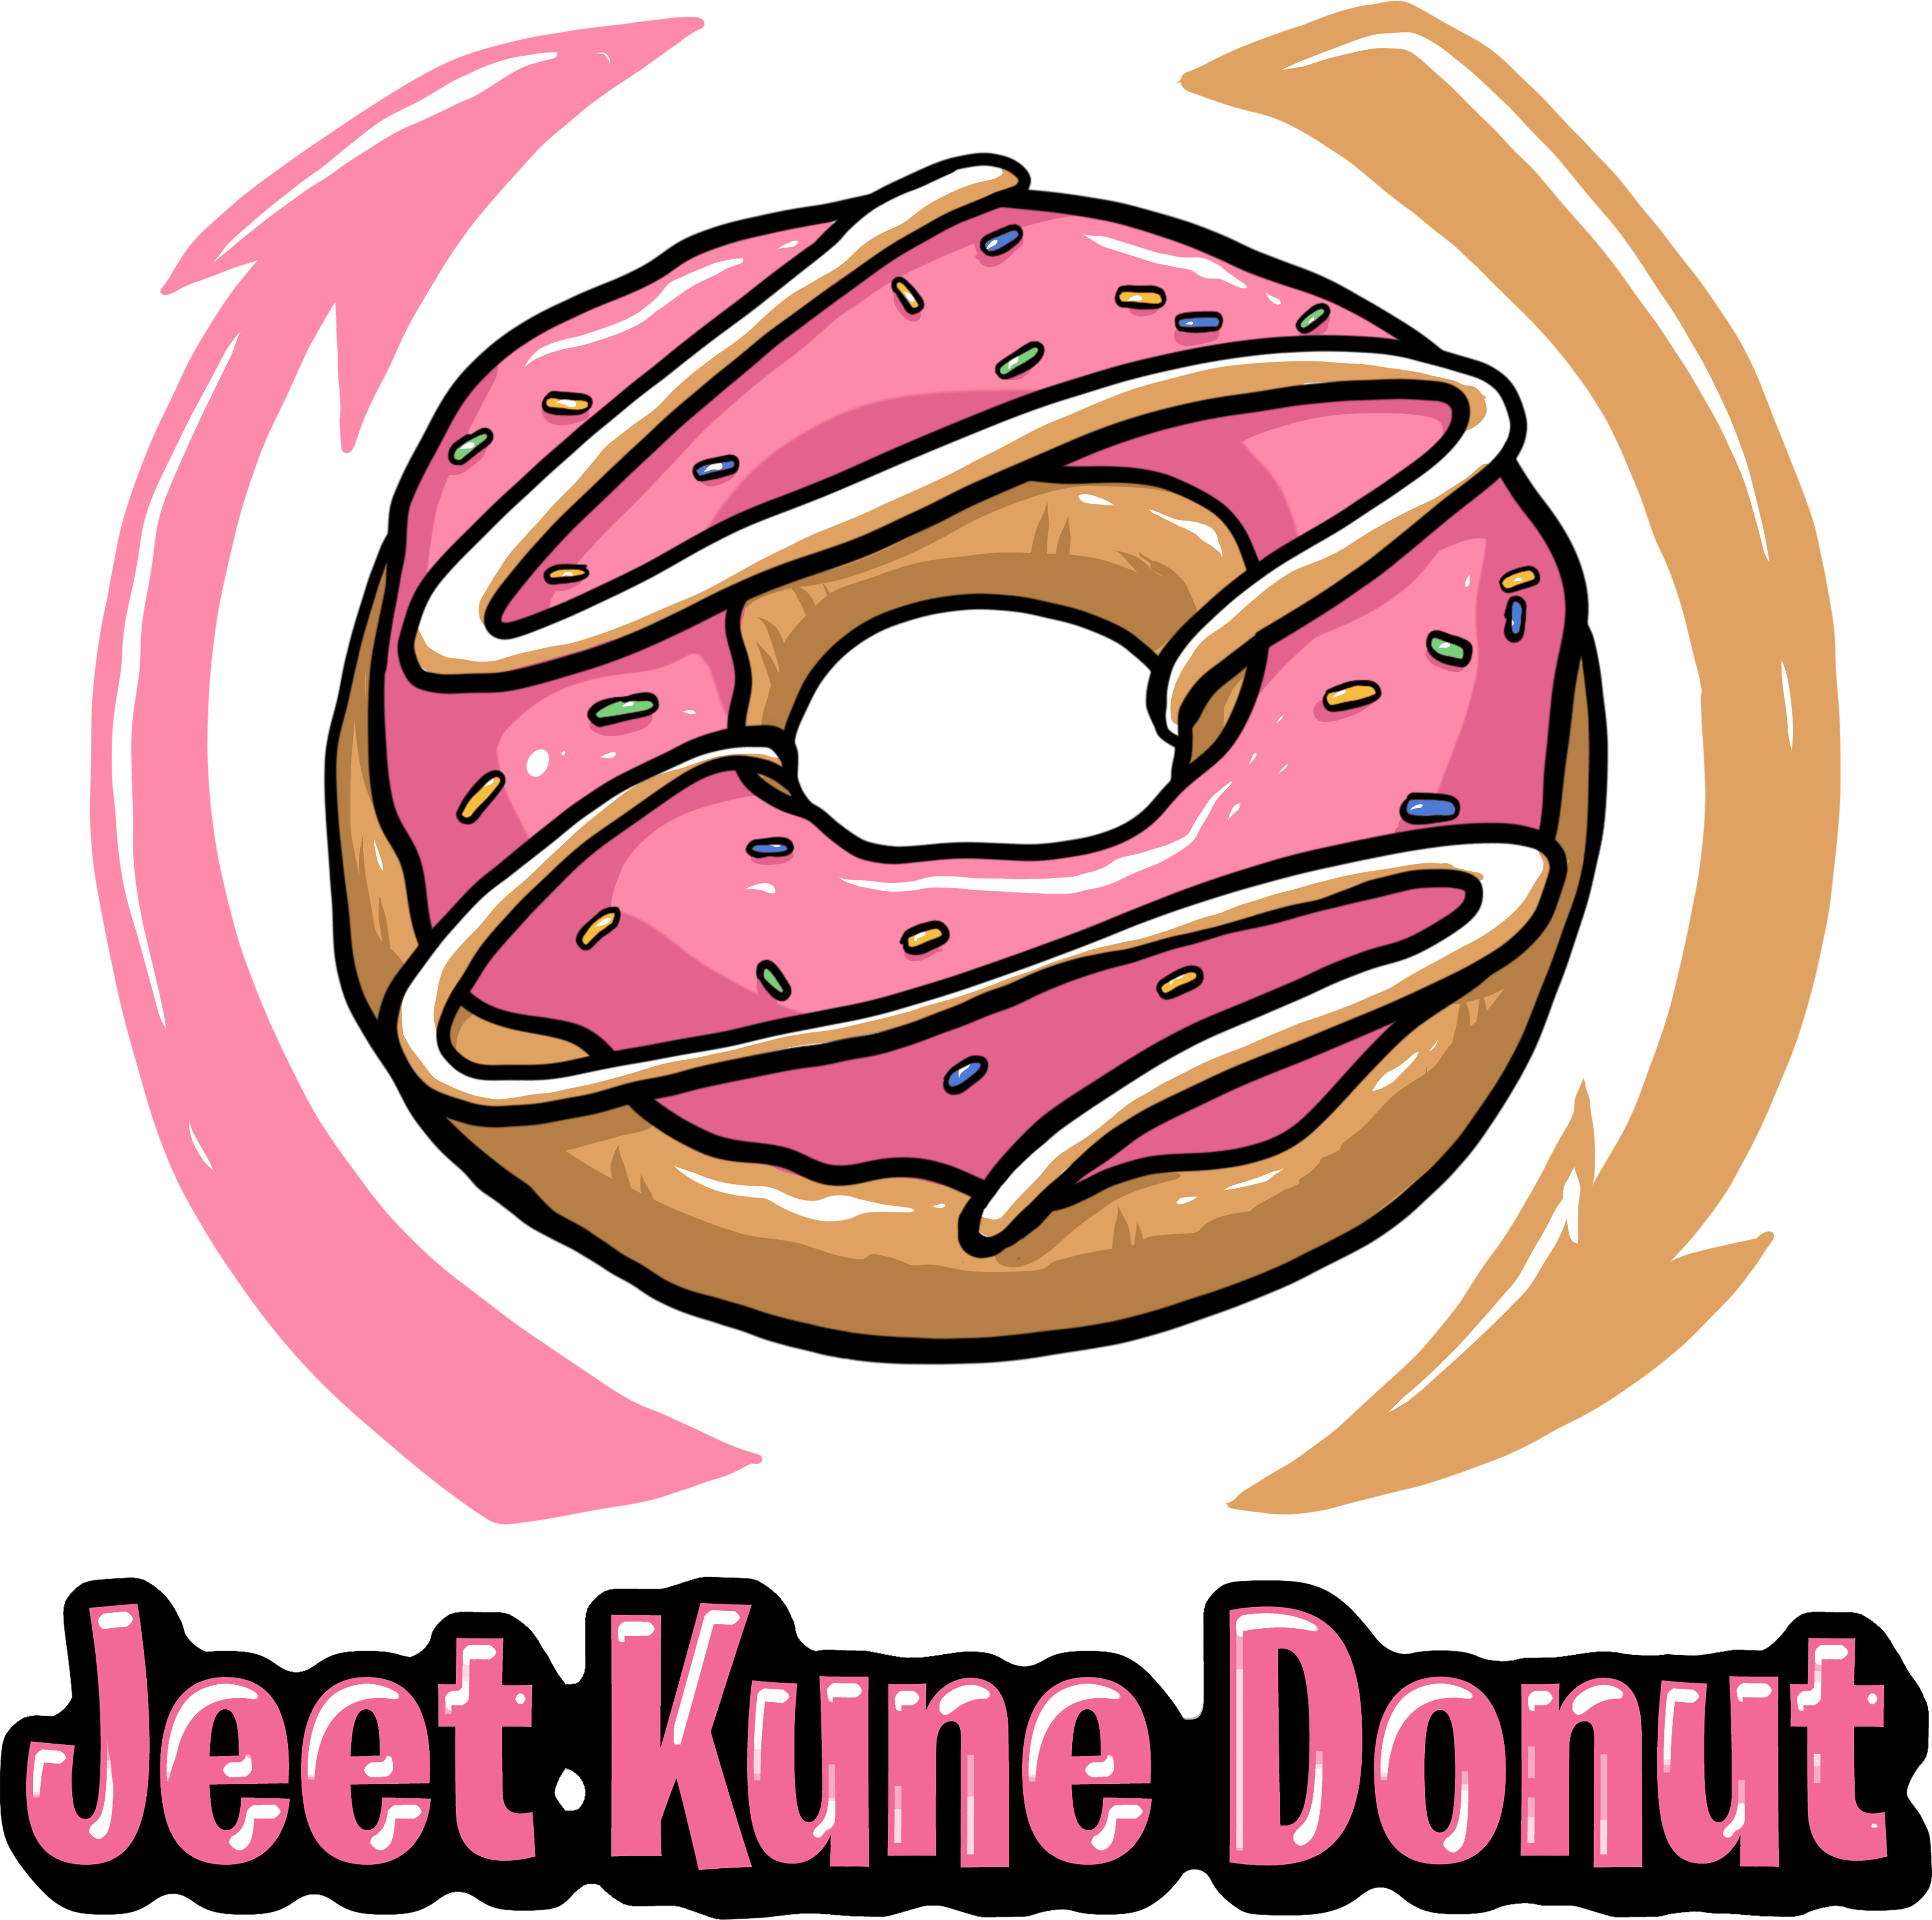 Donuts clipart food addiction. Intermittent fasting the accepted